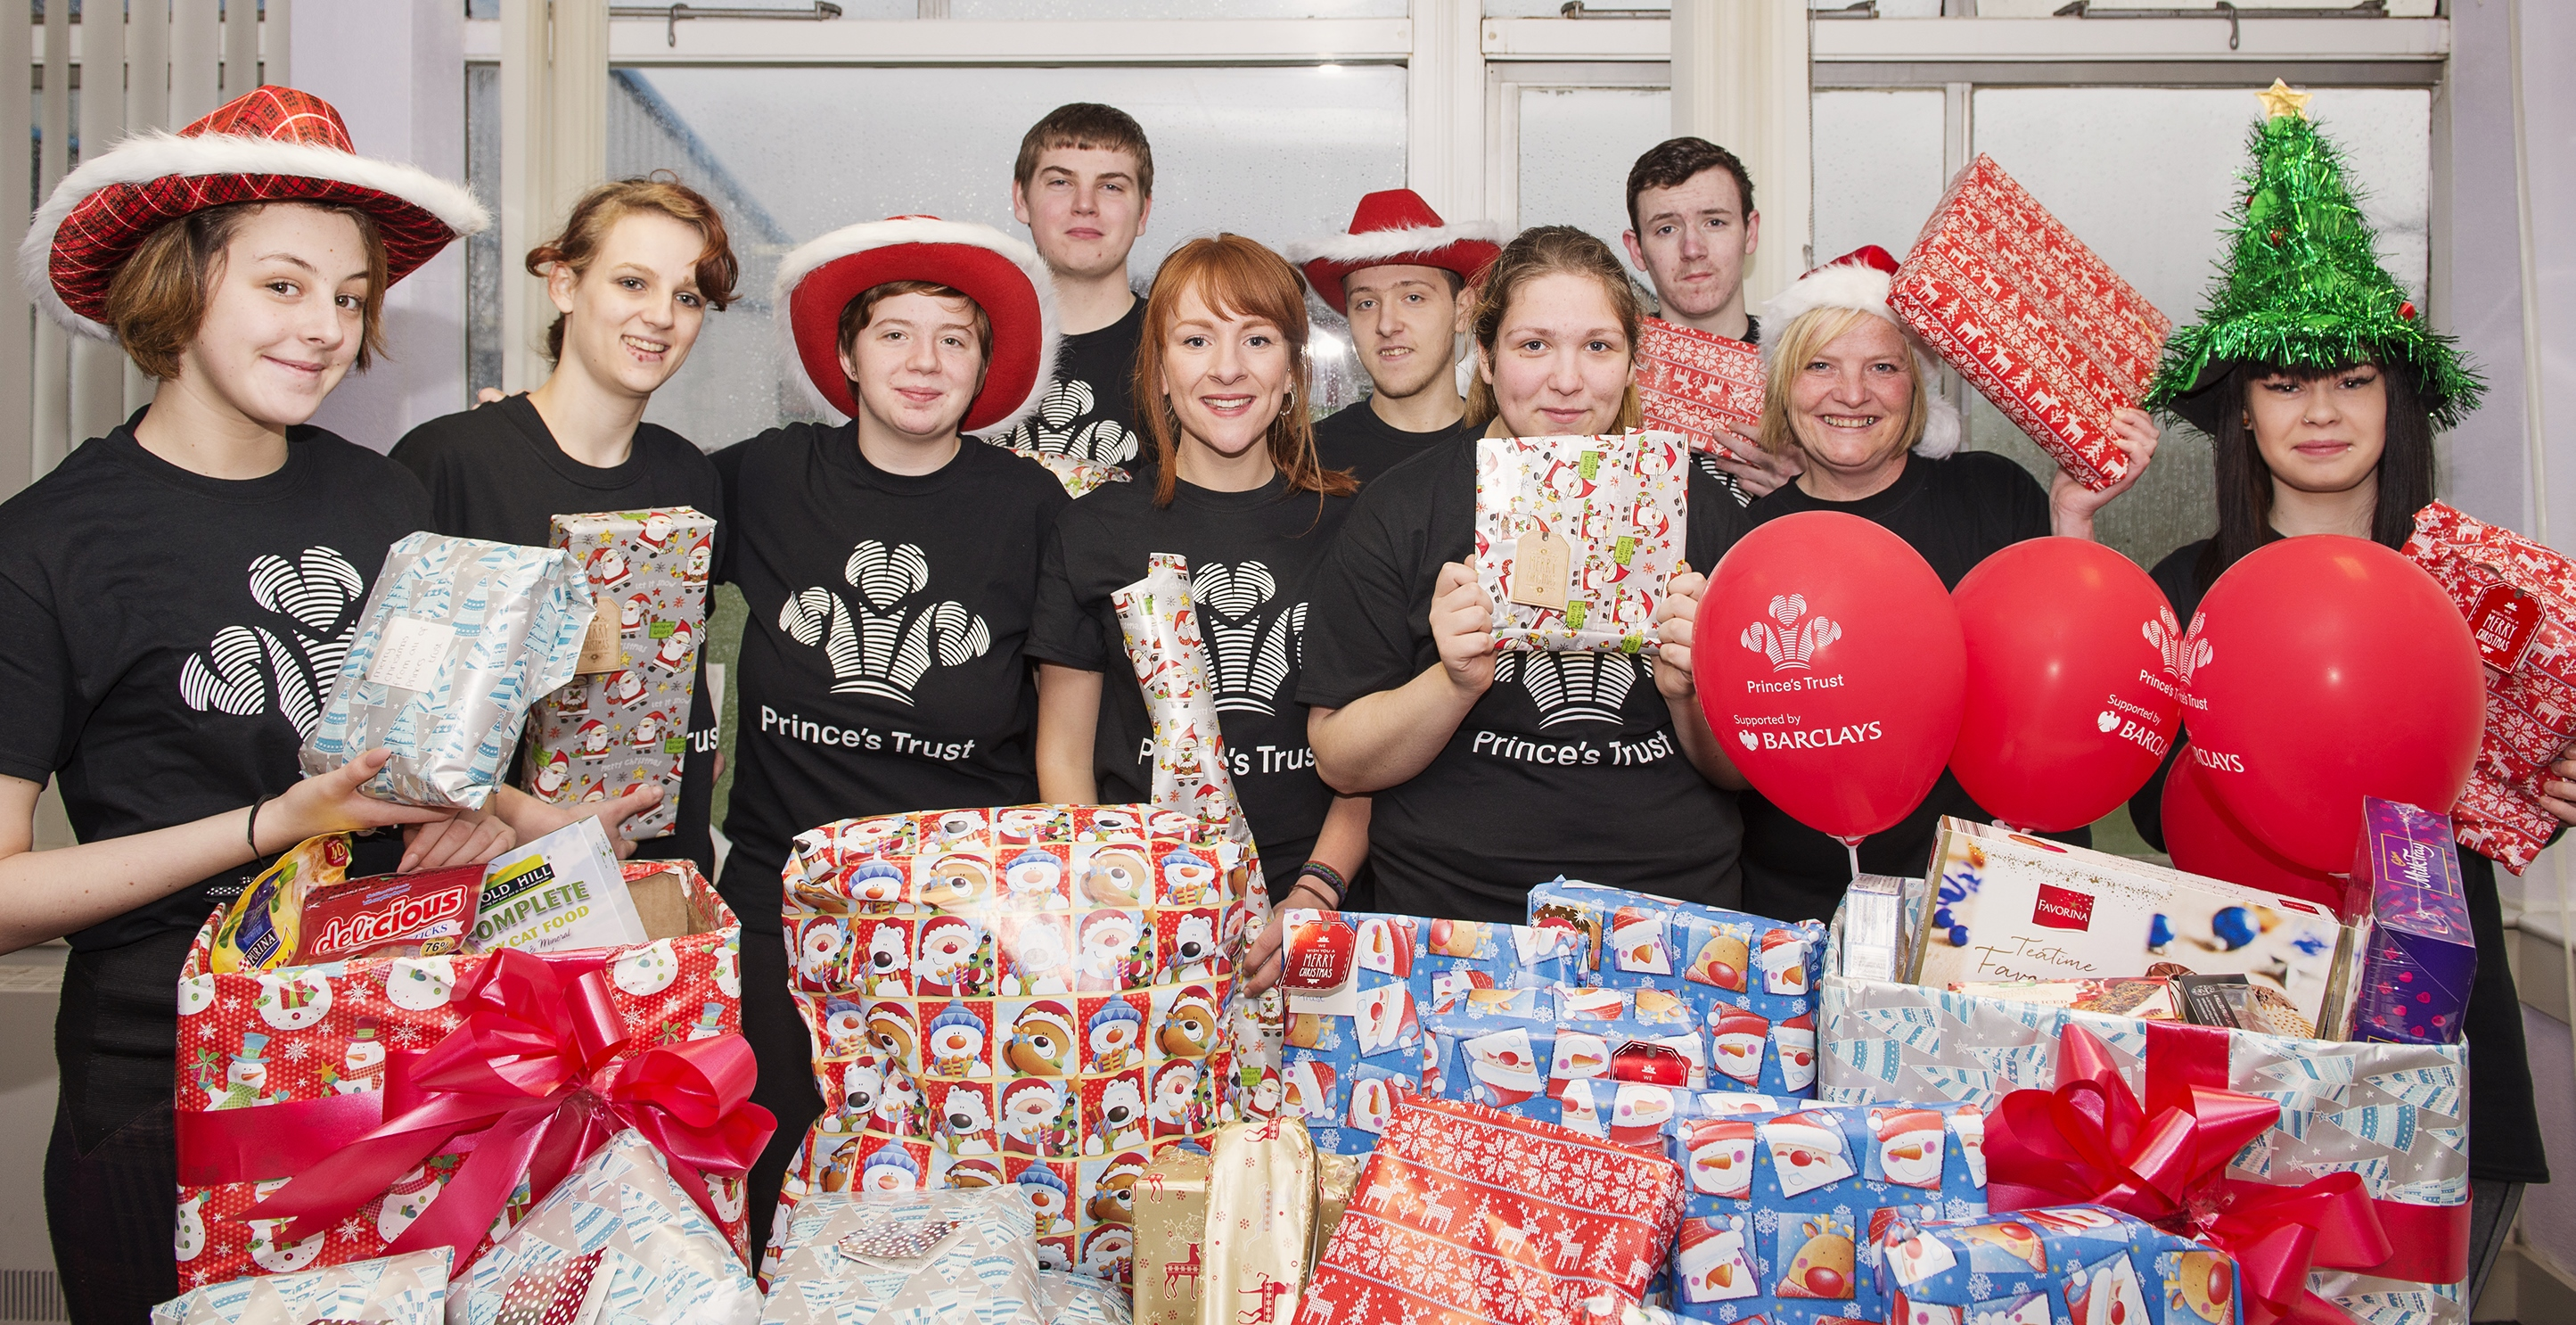 Princes Trust gift donations